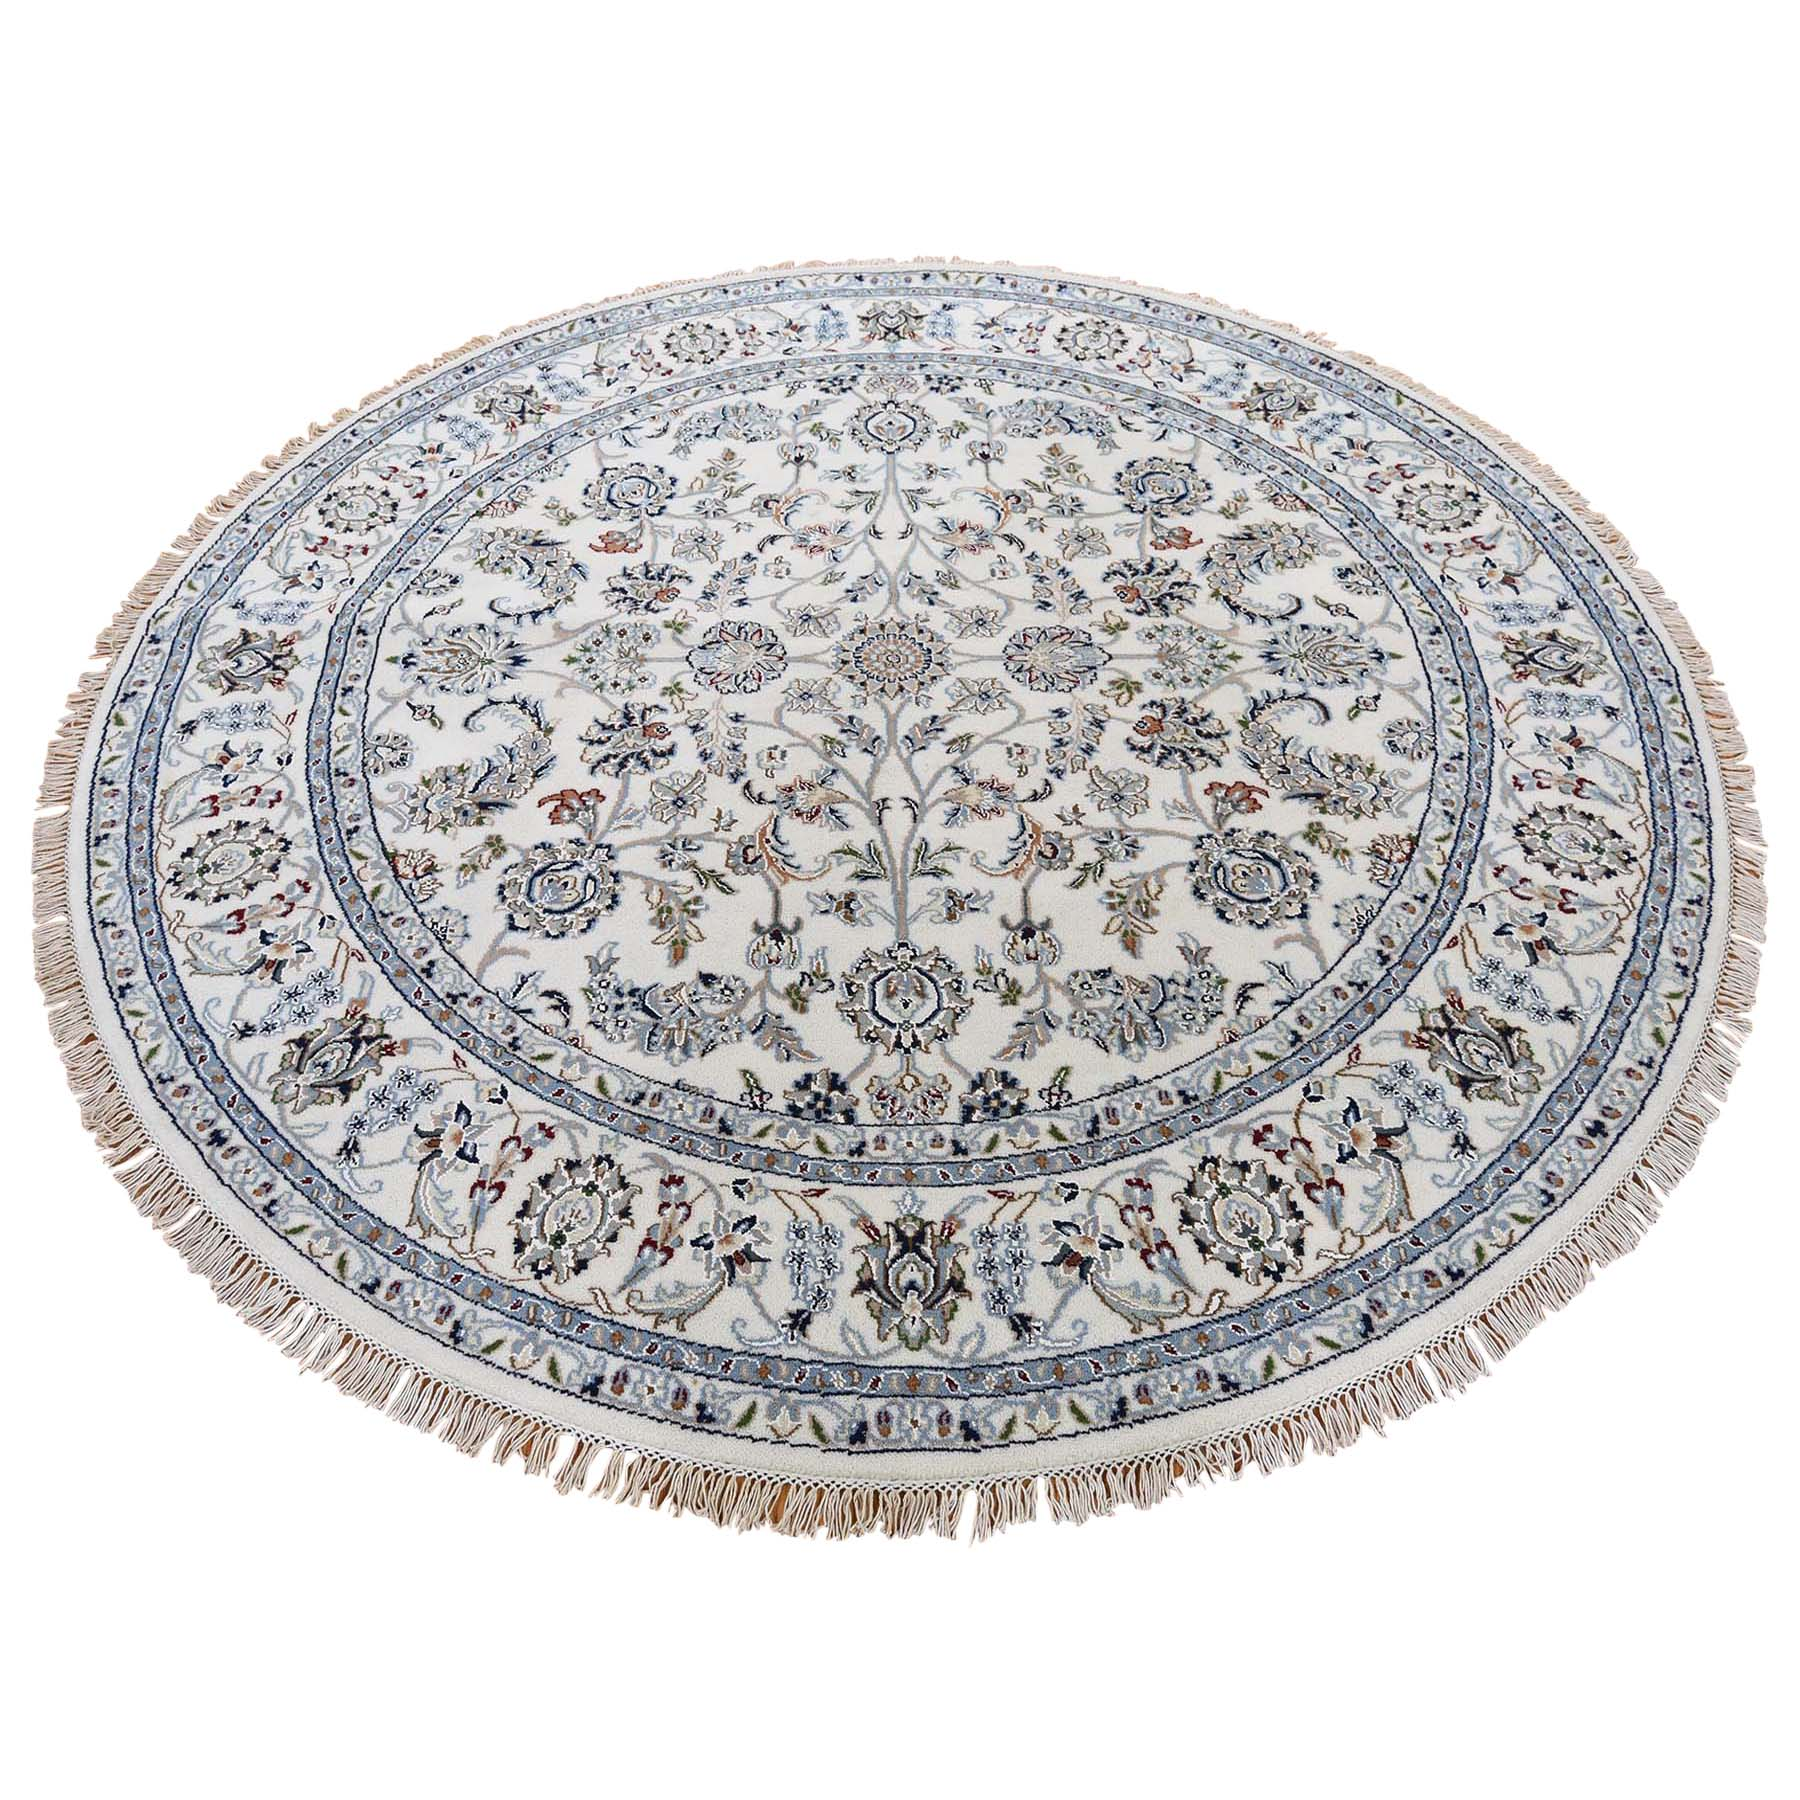 Pirniakan Collection Hand Knotted Ivory Rug No: 0186572